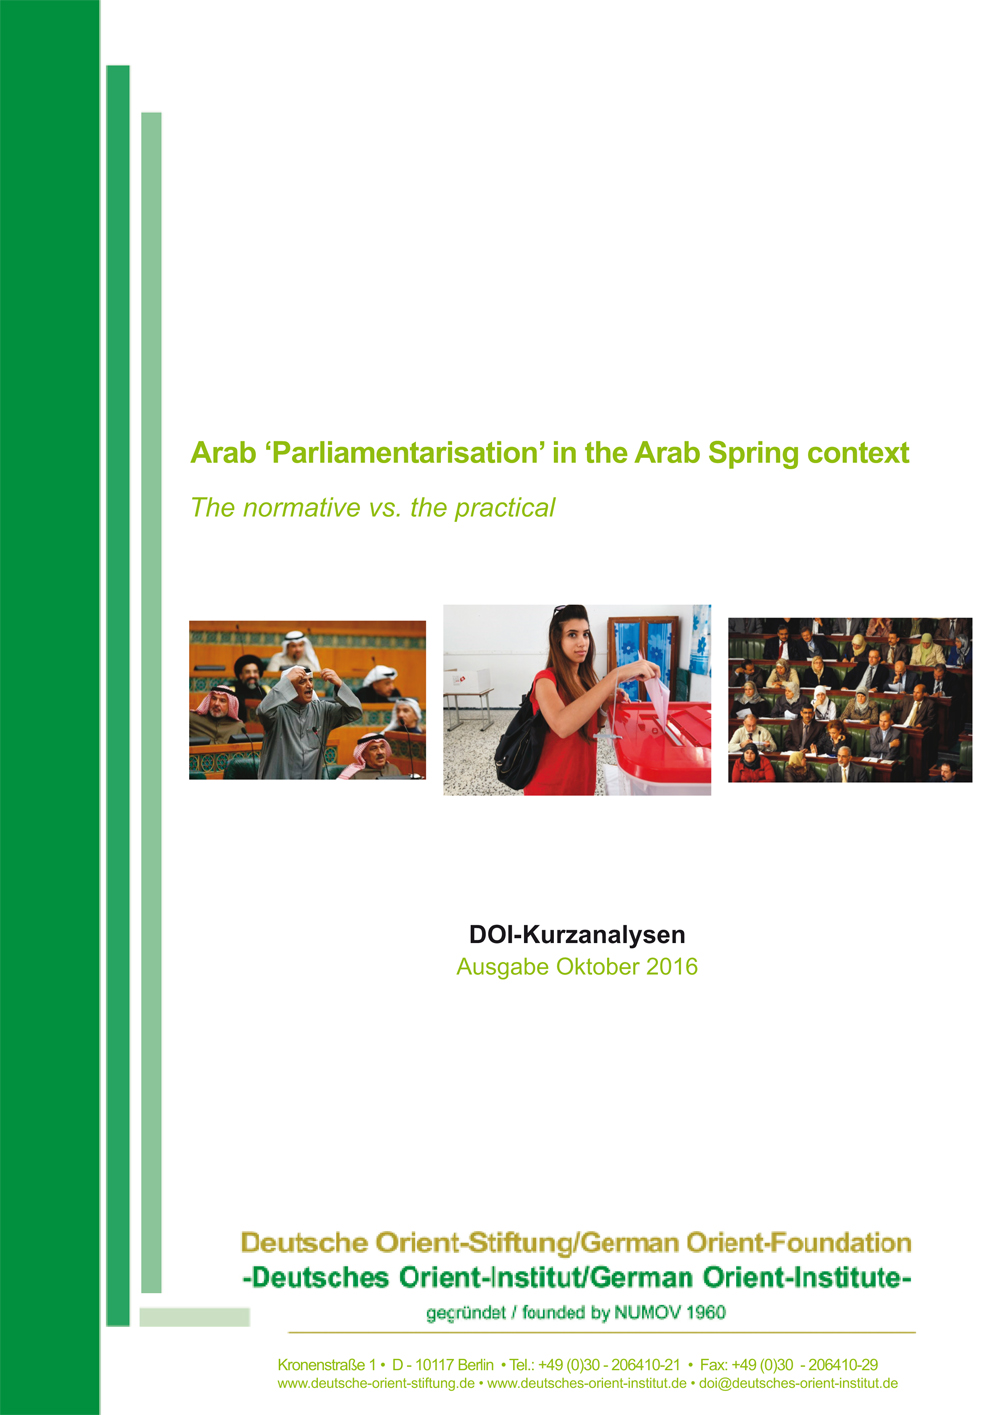 """Featured image for """"Arab 'Parliamentarisation' in the Arab Spring context: The normative vs. the practical"""""""